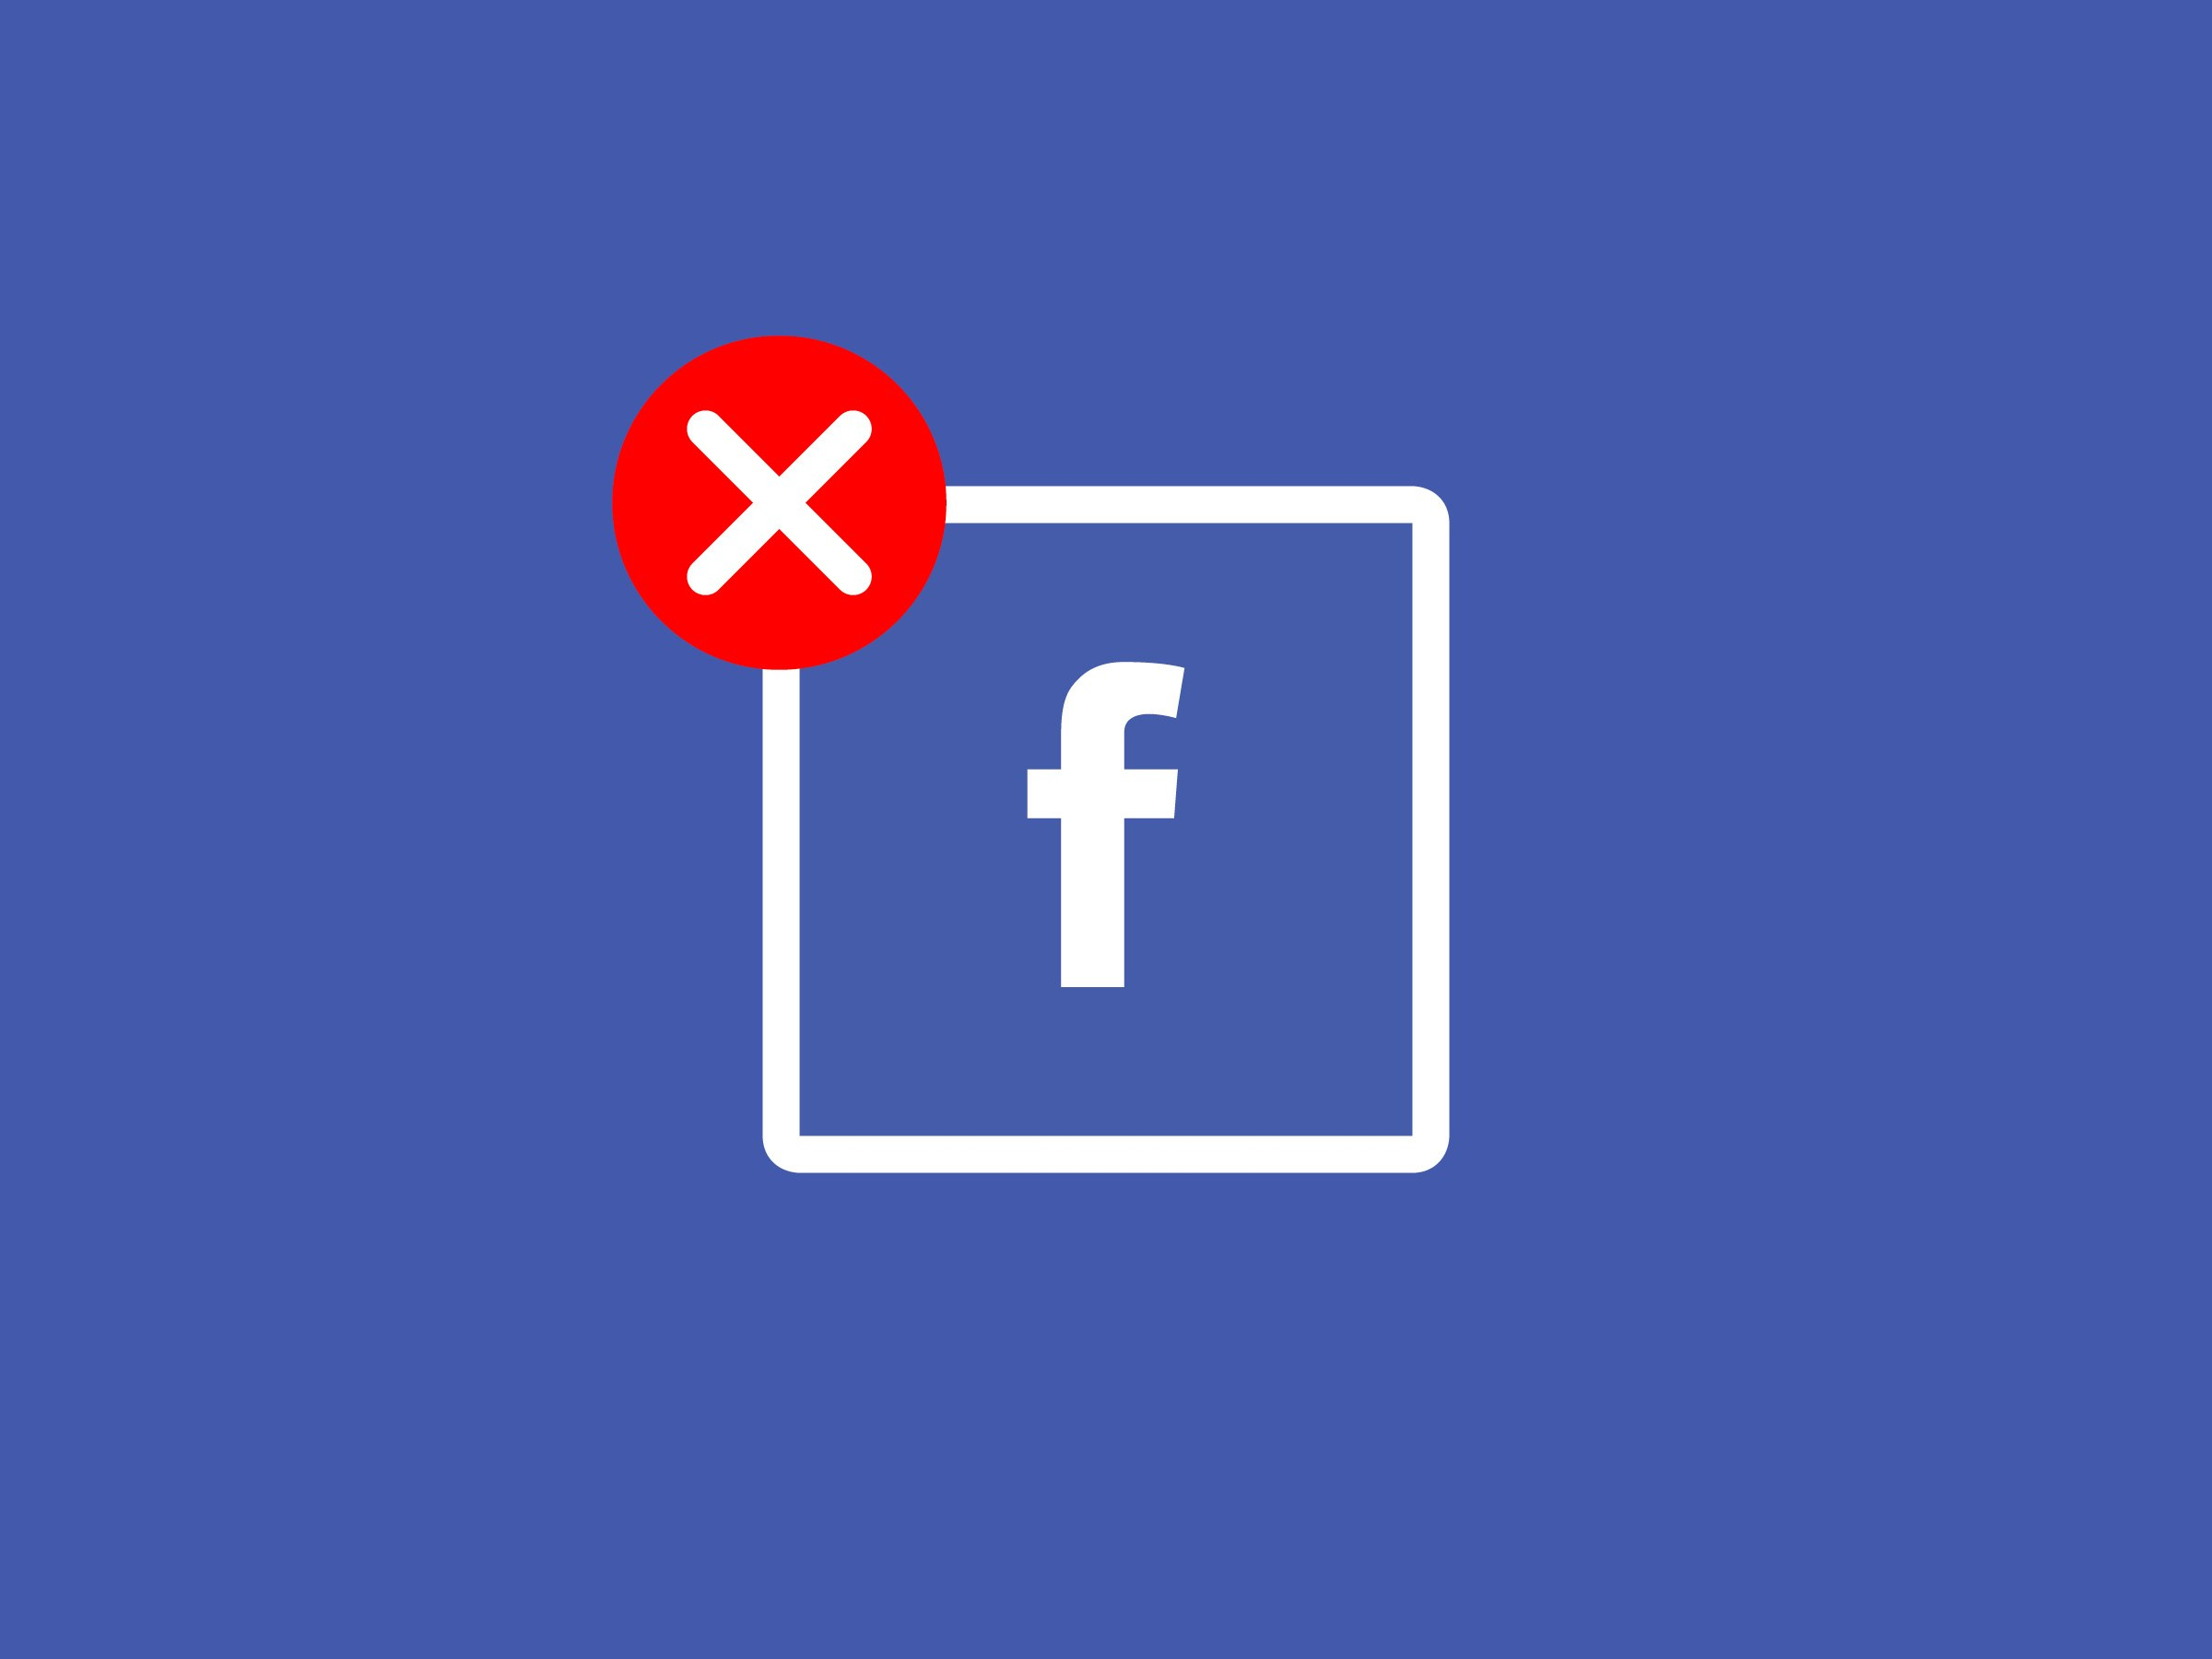 The Irish data protection Commission launched an investigation against Facebook